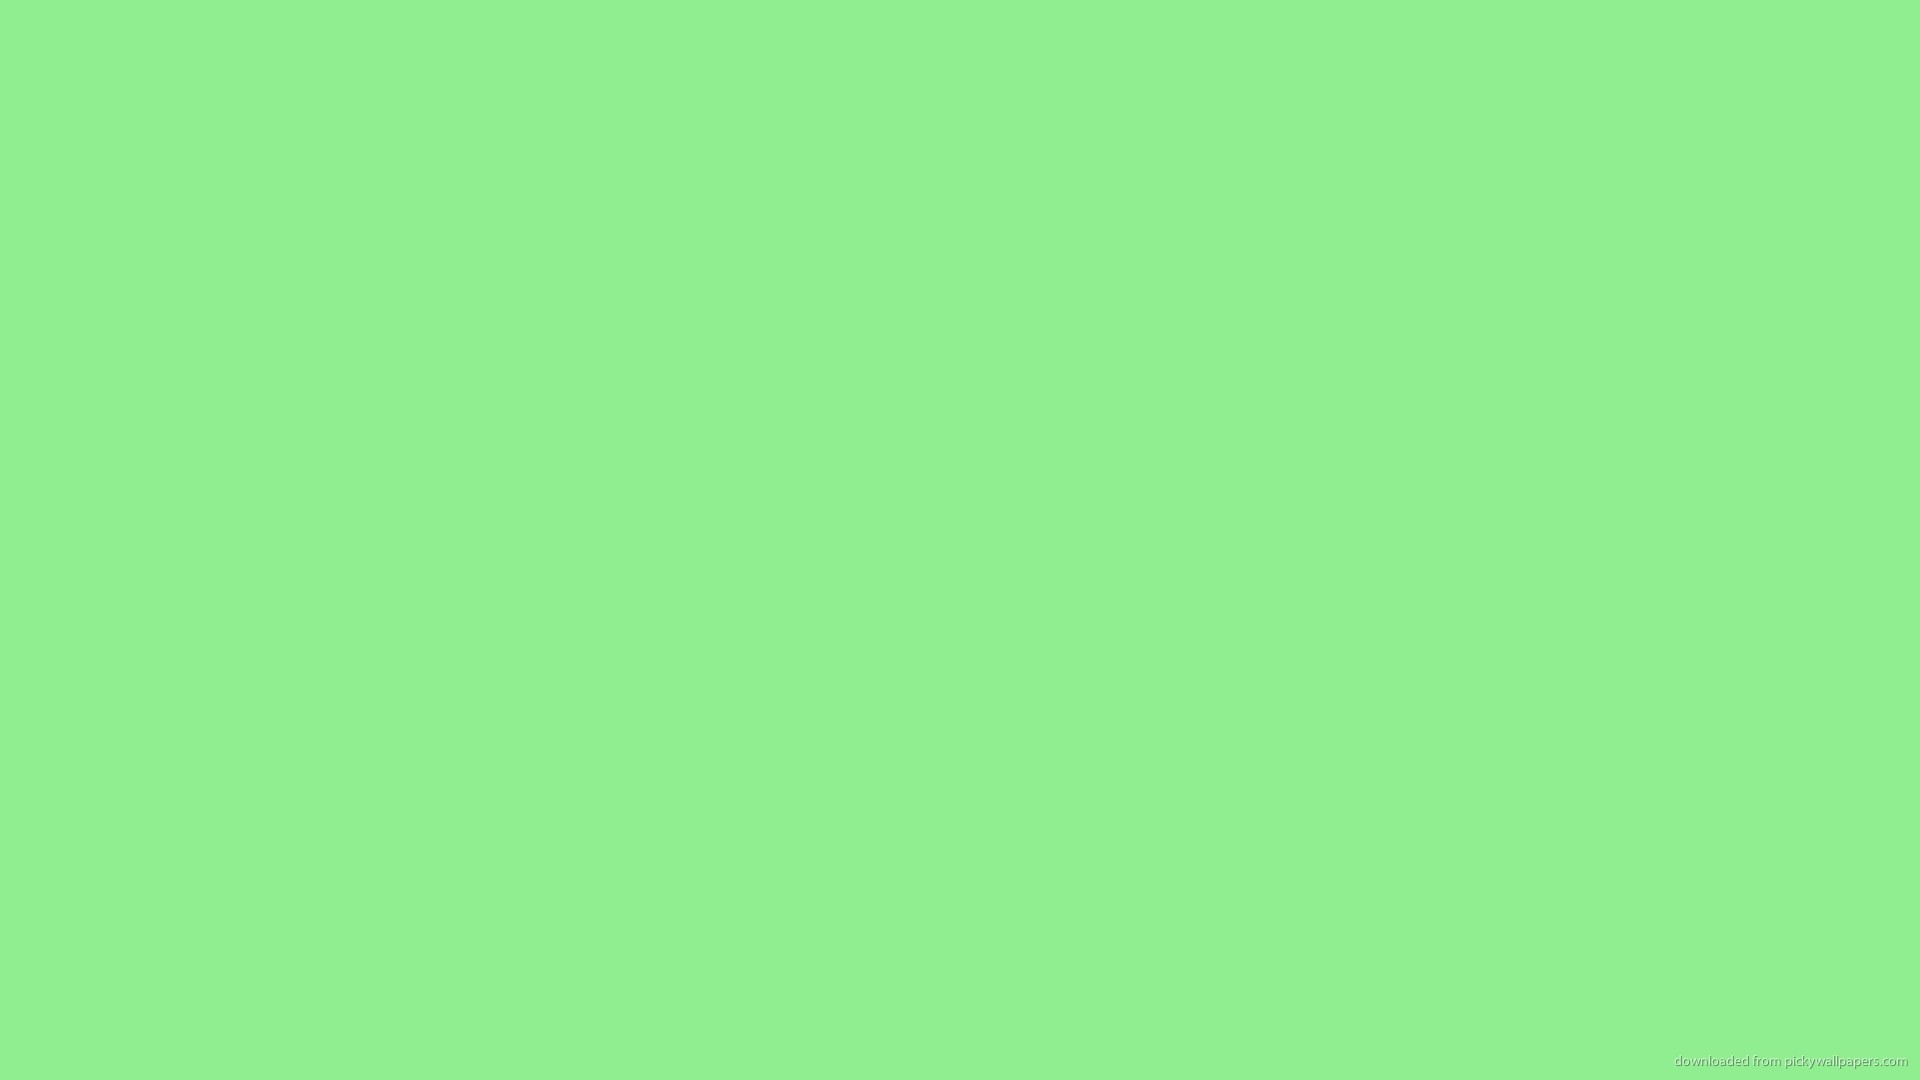 1920x1080 Solid Light Green Color Wallpaper Picture For iPhone, Blackberry, iPad .